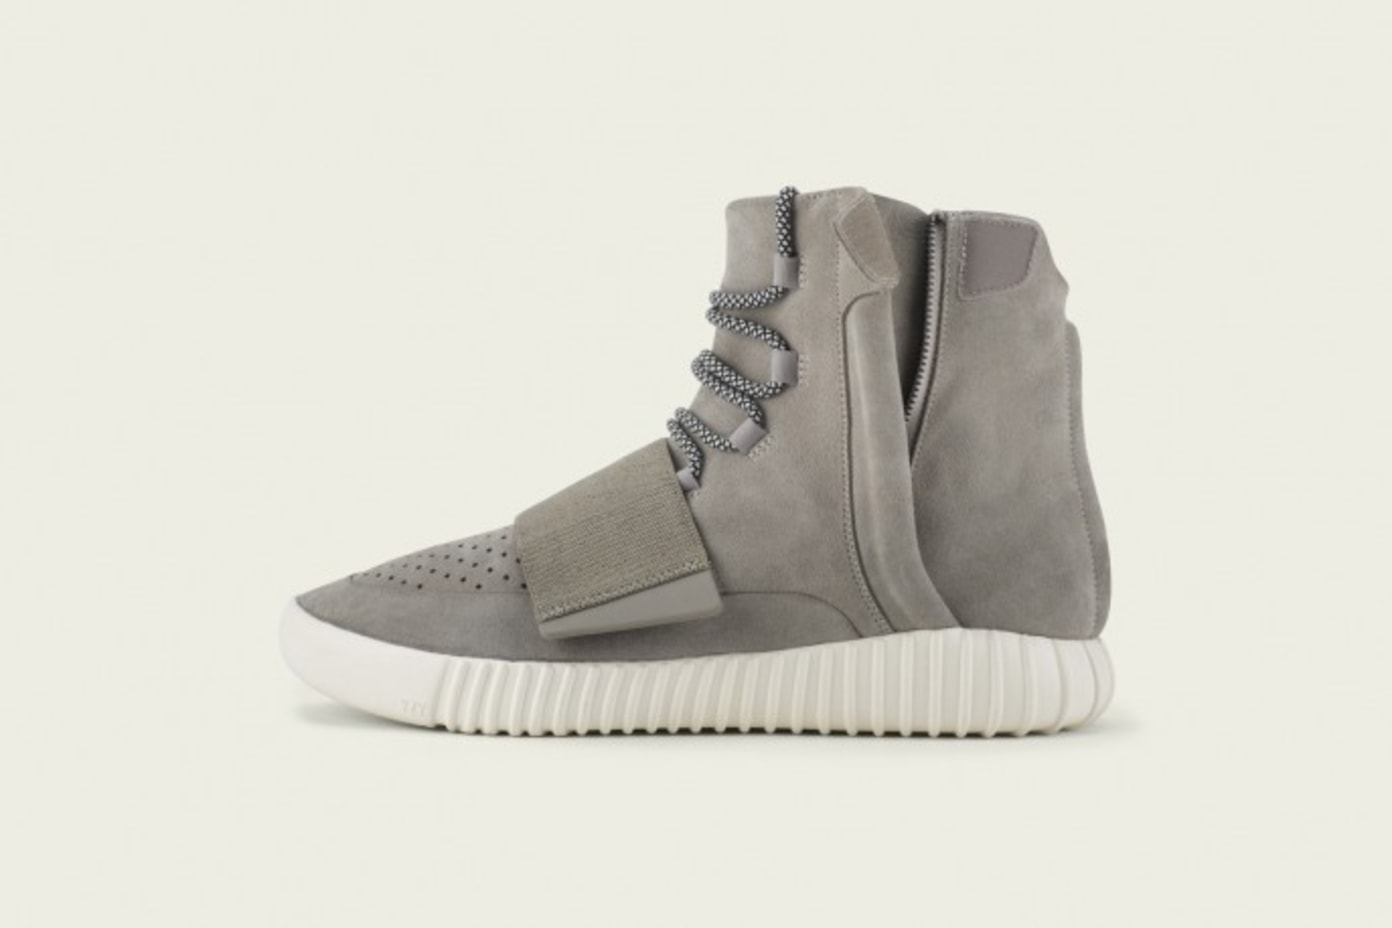 adidas Yeezy Boost Dropping at